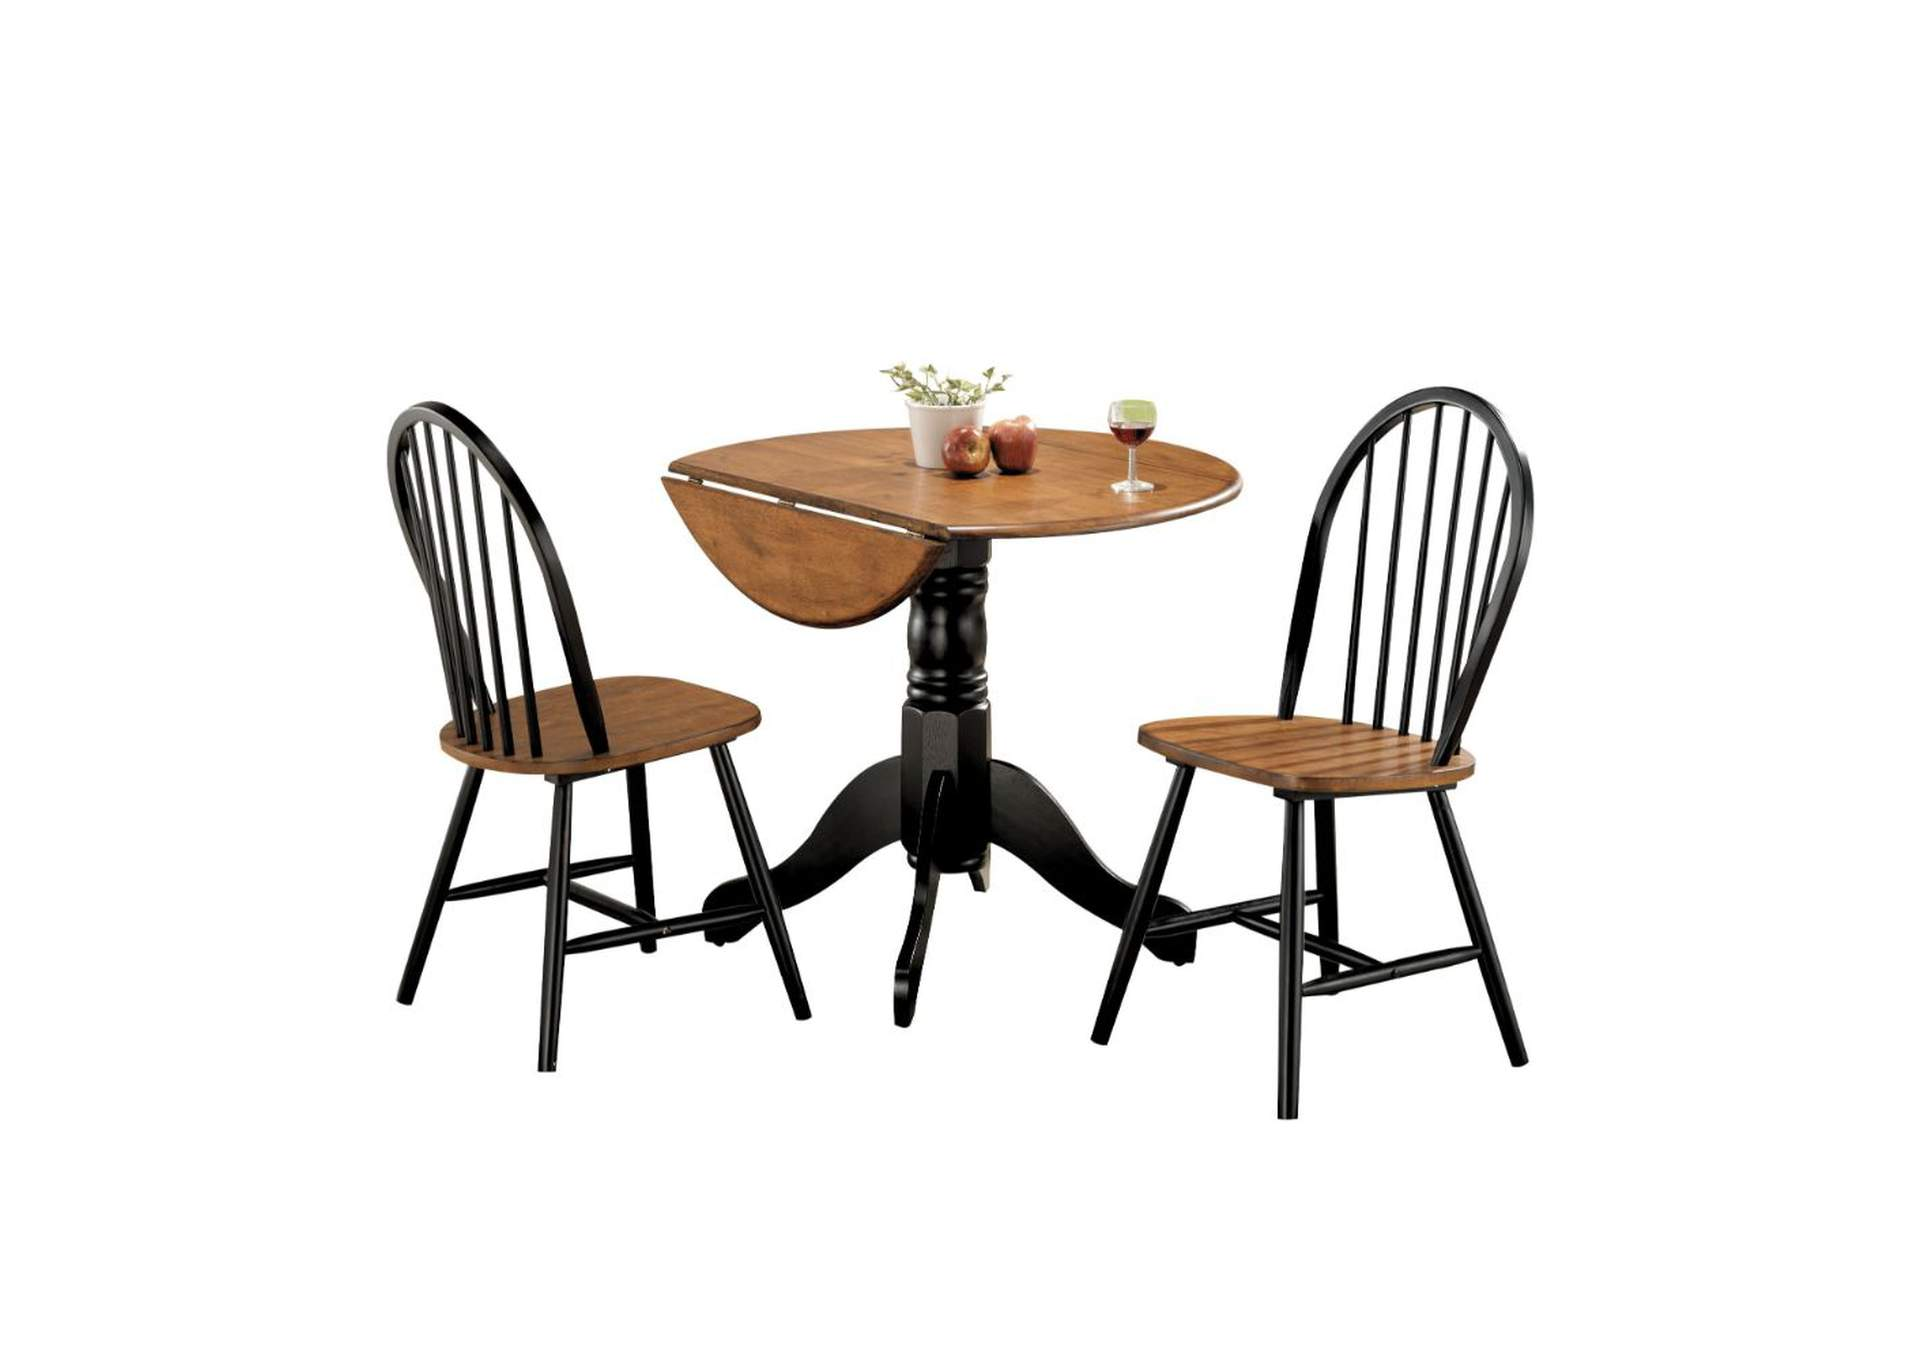 Mason Cherry and Black 3 Piece Dining Set,Acme